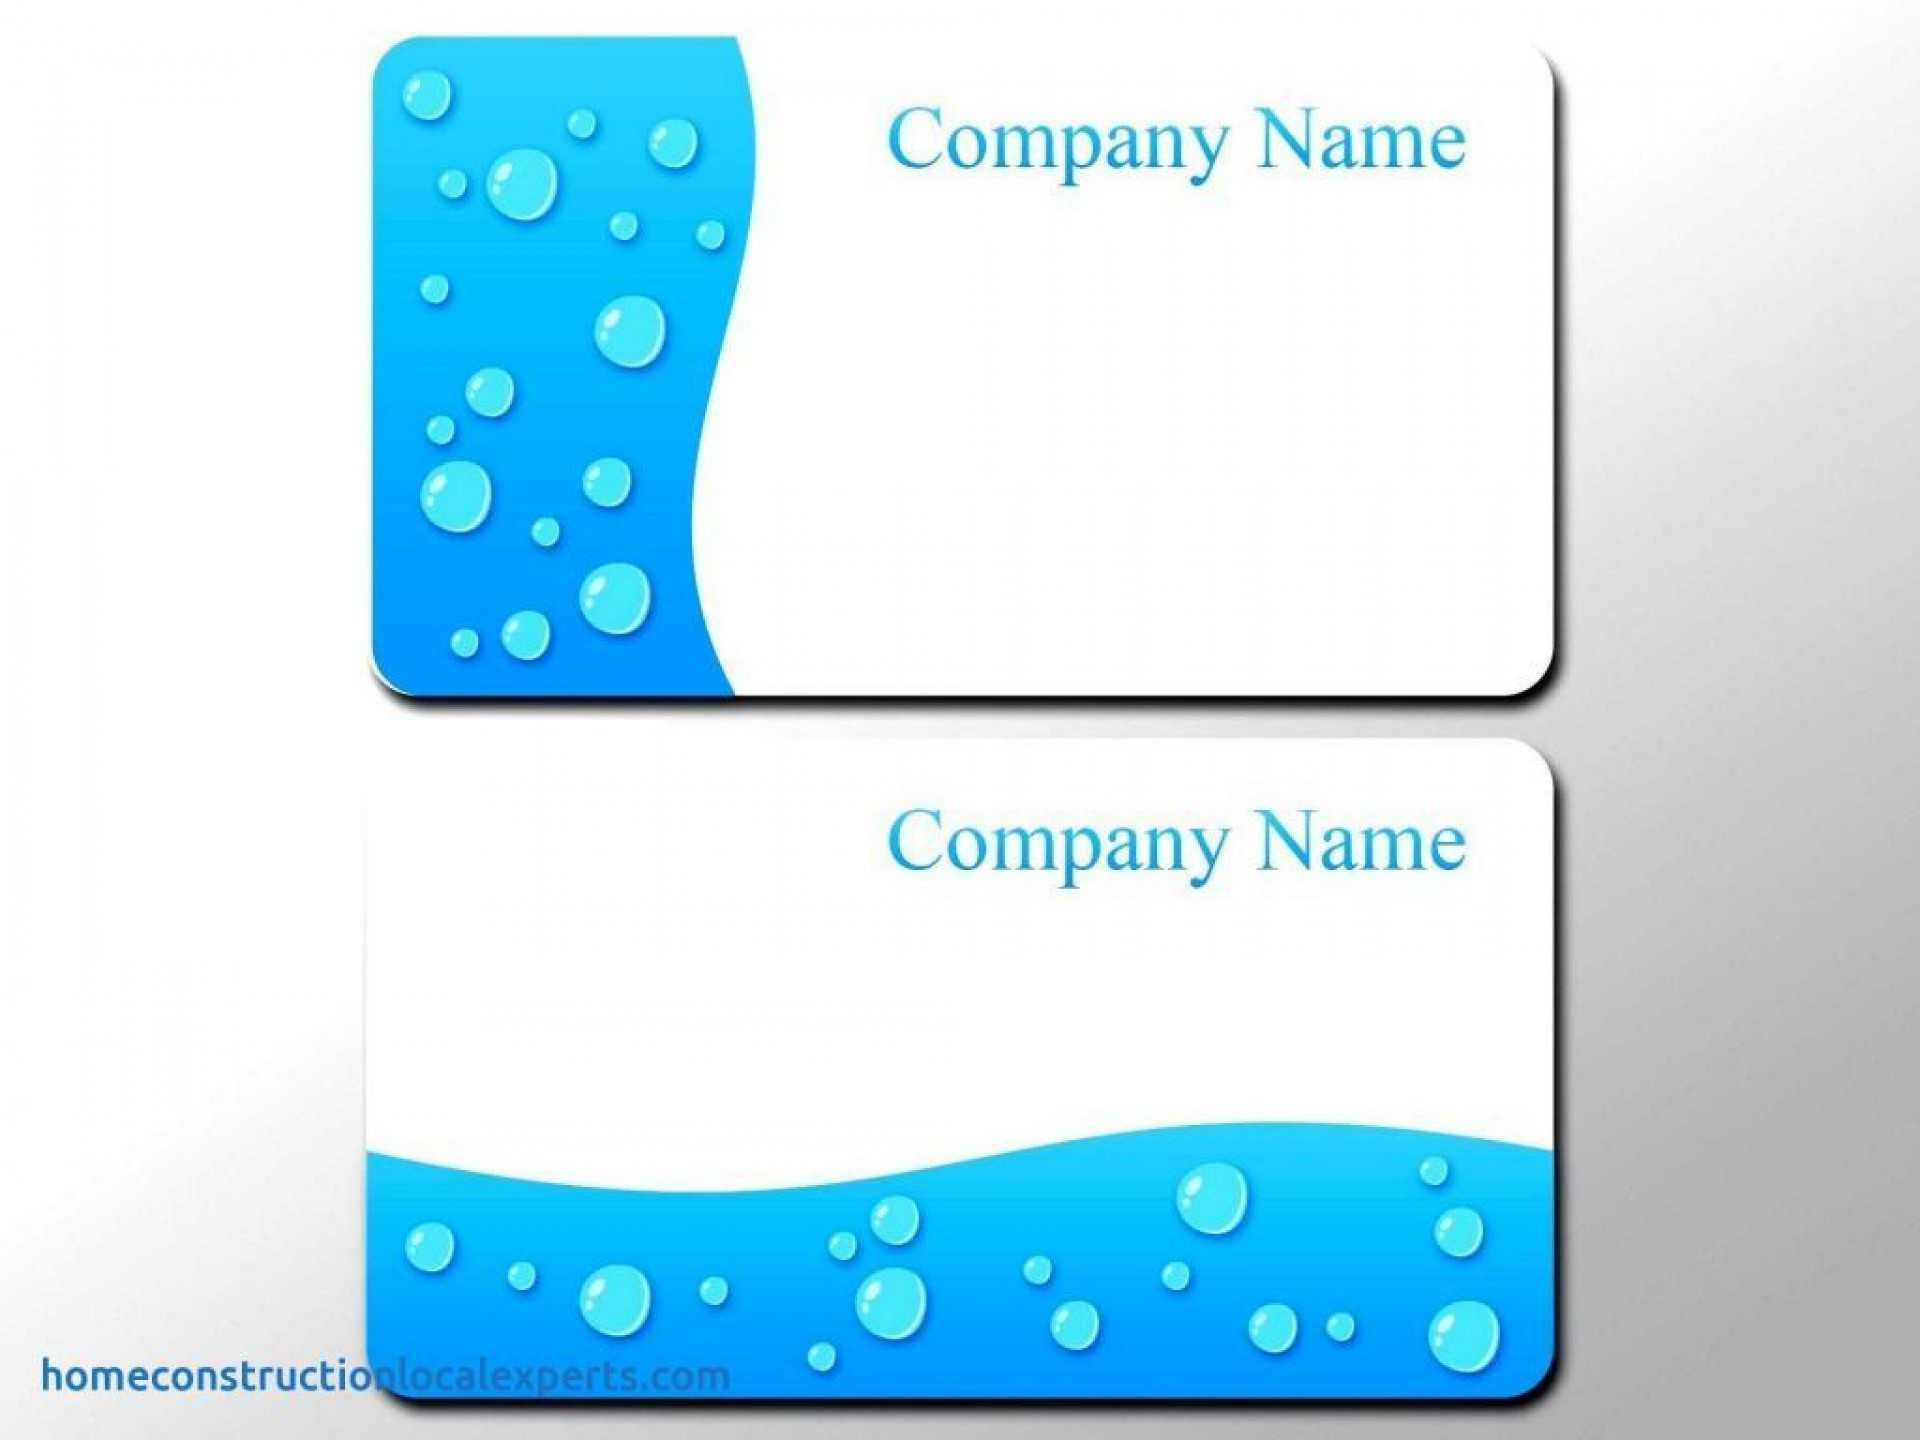 009 Free Blank Business Card Templates Open Office With For Inside Business Card Template Open Office